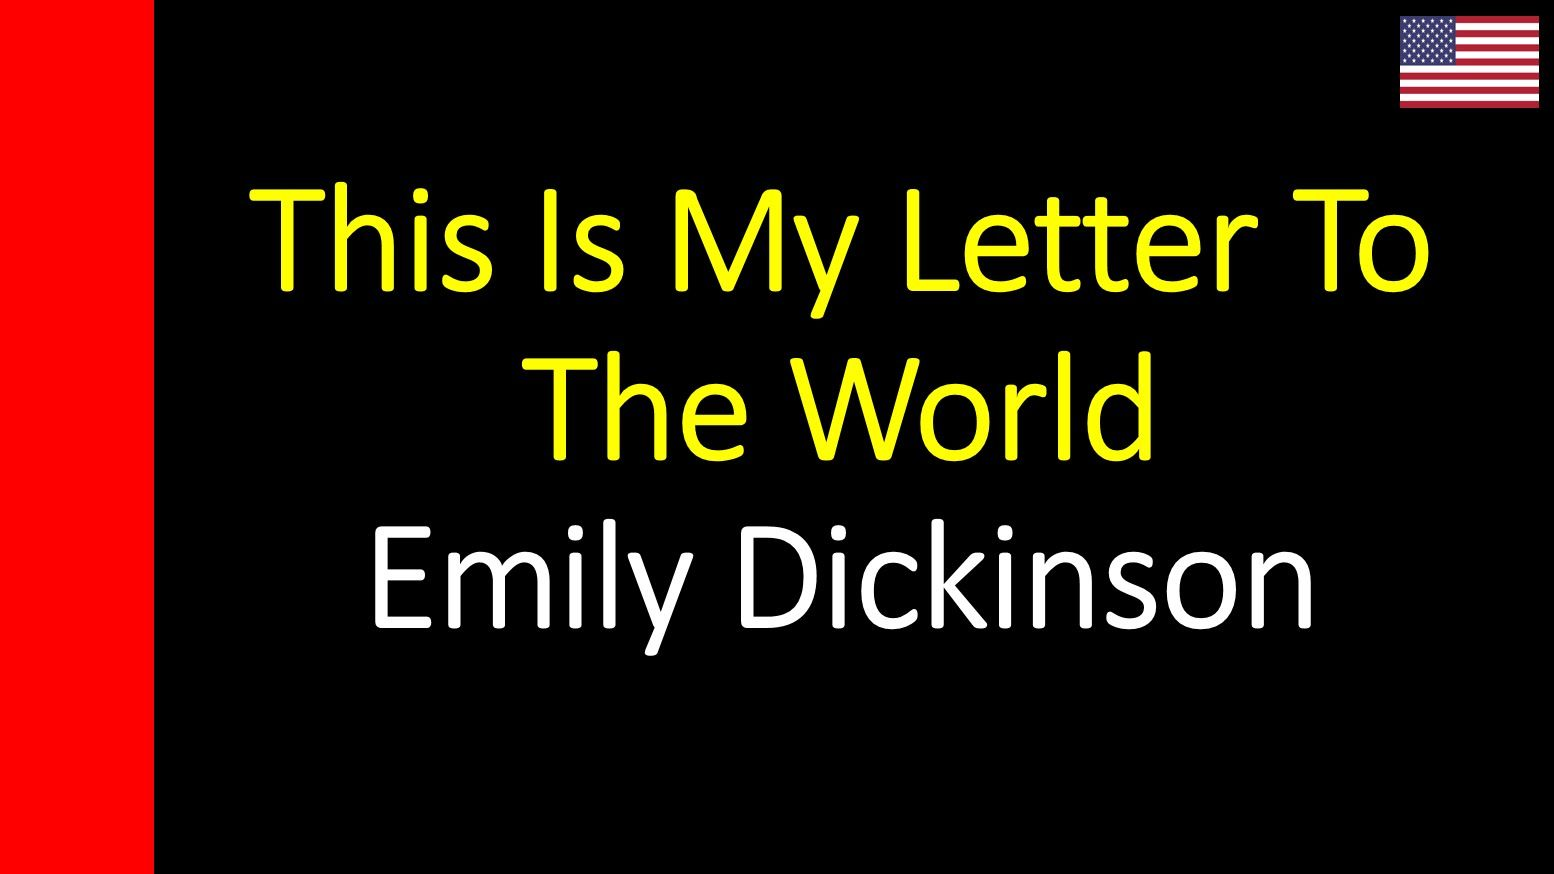 Emily Dickinson - This Is My Letter To The World